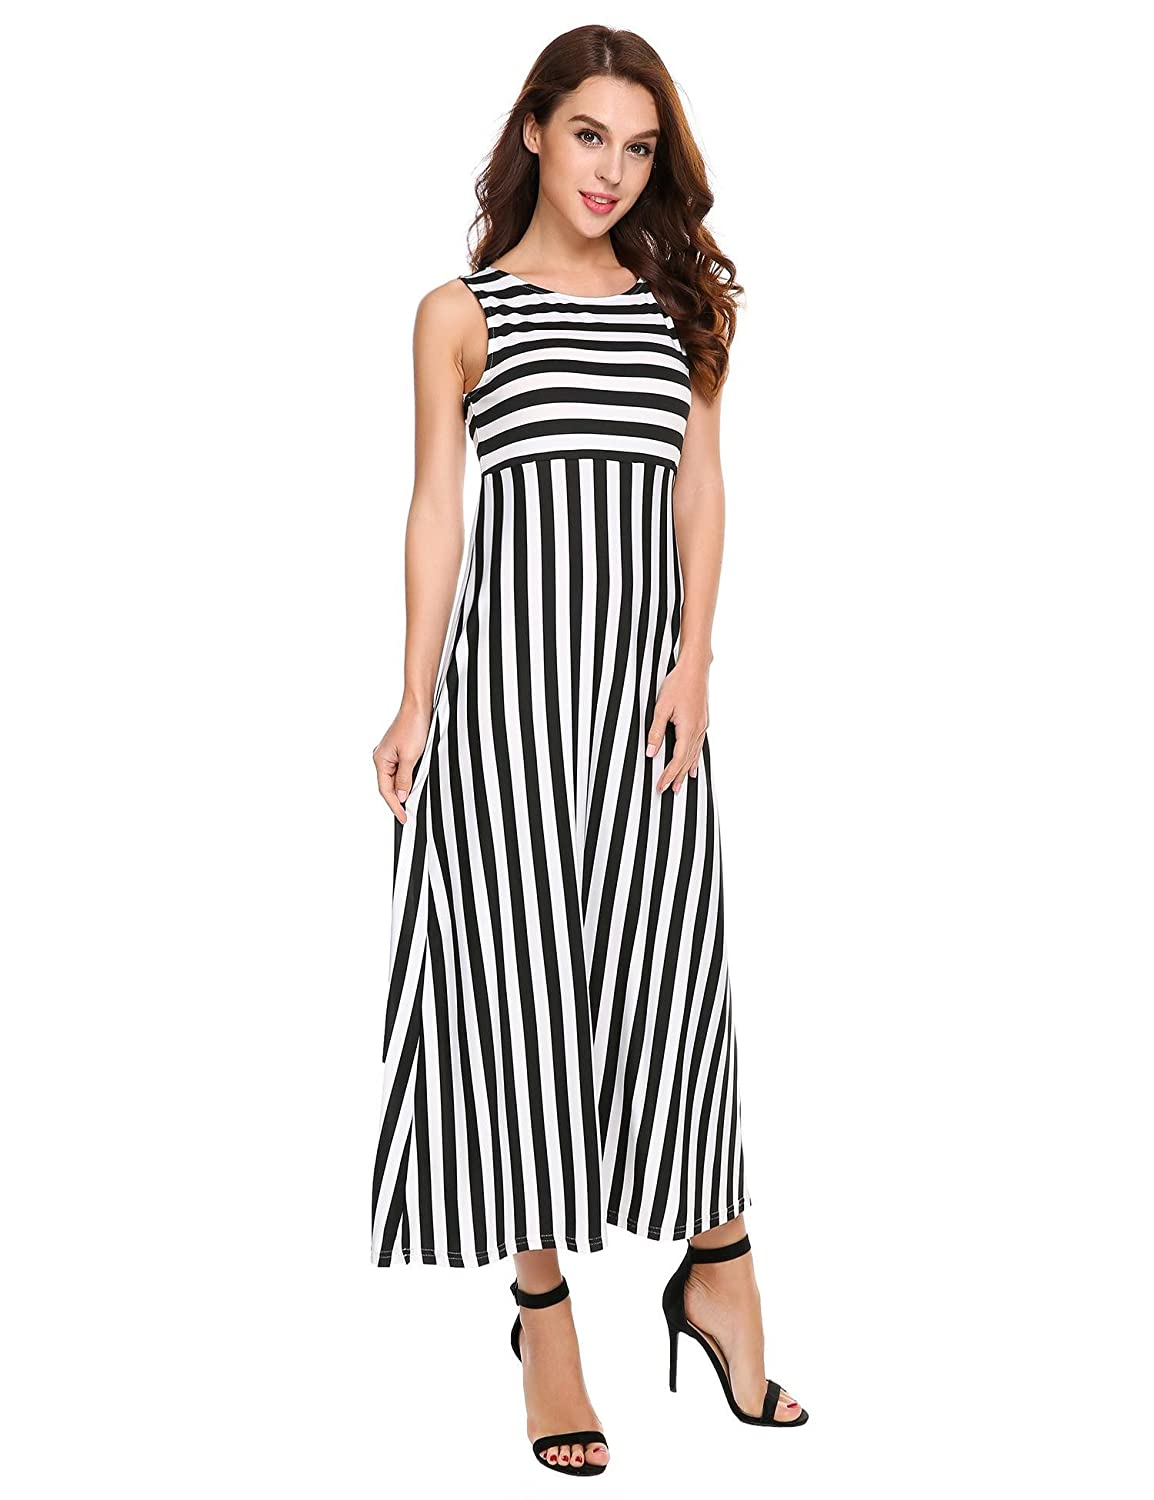 Nessere Plus Size Dress Dresses Online Maxi Dress for Women ...